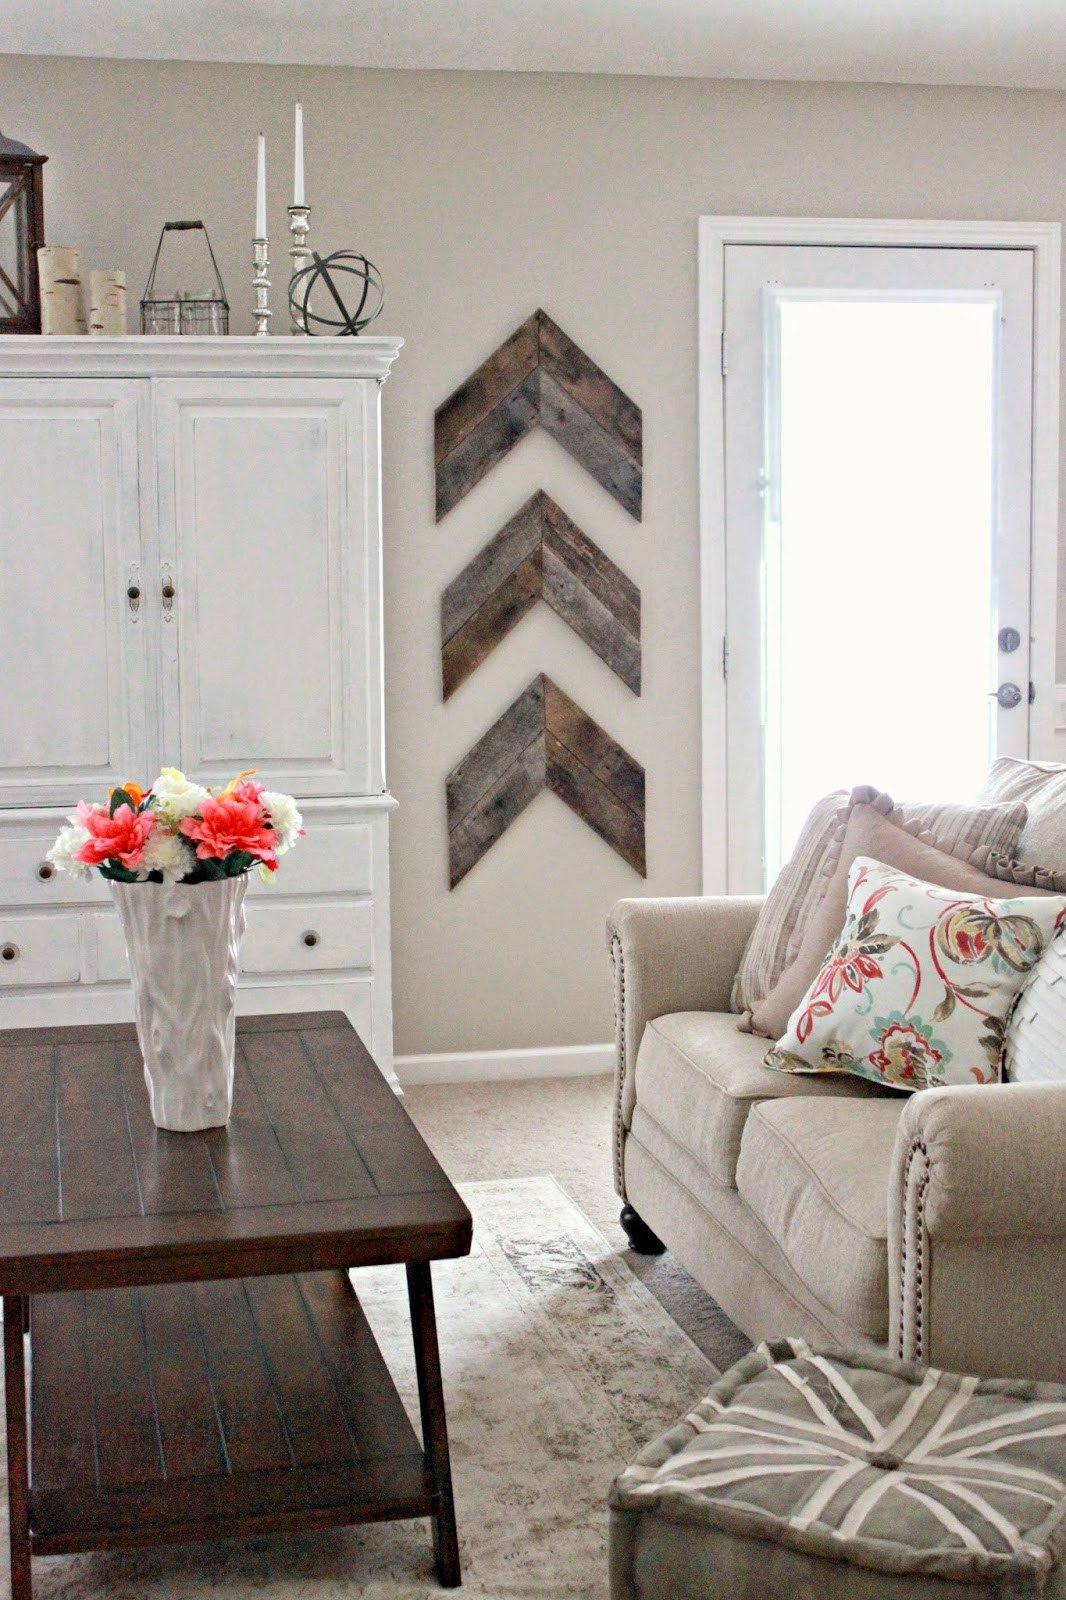 Wall Decor for Family Room Fresh 27 Best Rustic Wall Decor Ideas and Designs for 2019